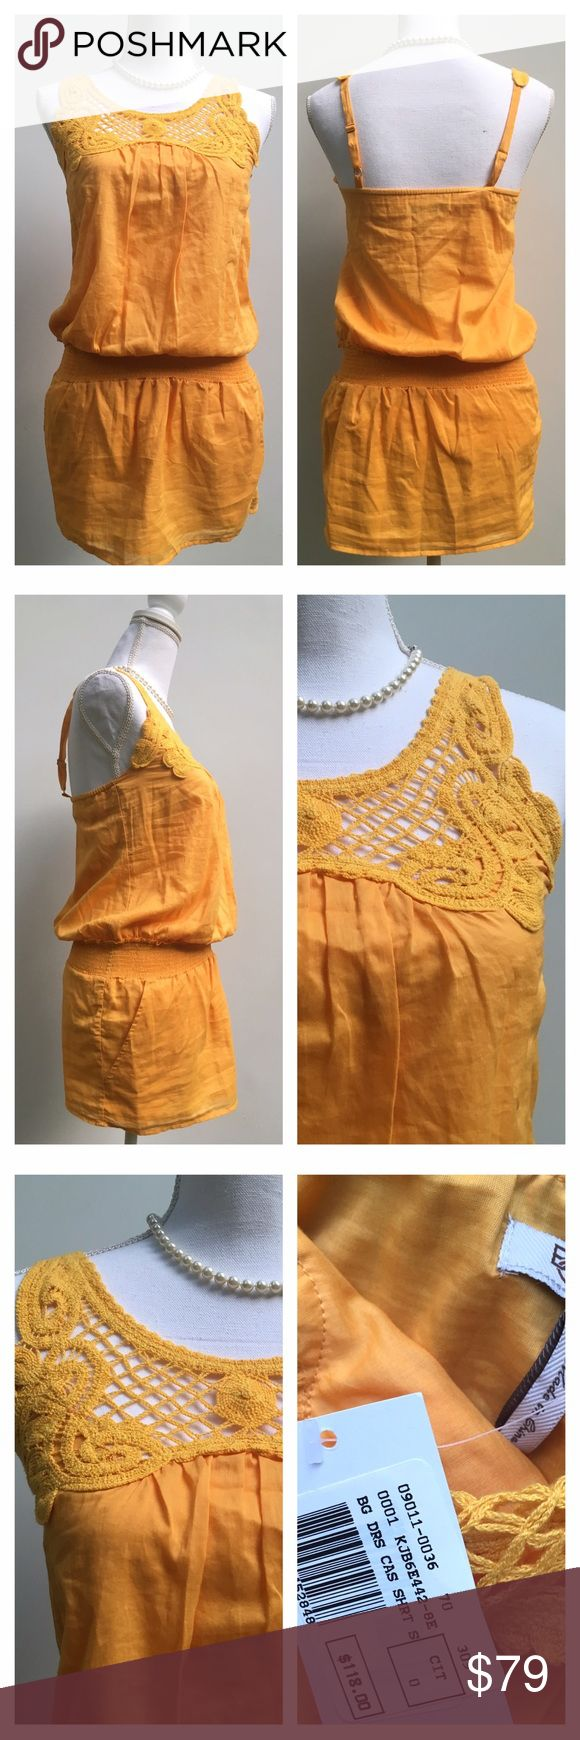 BCBGENERATION Yellow Crochet Bib Tunic Tank NWT BCBGENERATION Yellow Crochet Bib Tunic Tank. Can be worn as a very short dress or a longer cinched waist tank. Beautiful crochet bin, adjustable spaghetti straps. Lovely Goldenrod Yellow. Lightweight cotton material. Pockets! New With Tags! BCBGeneration Tops Tank Tops